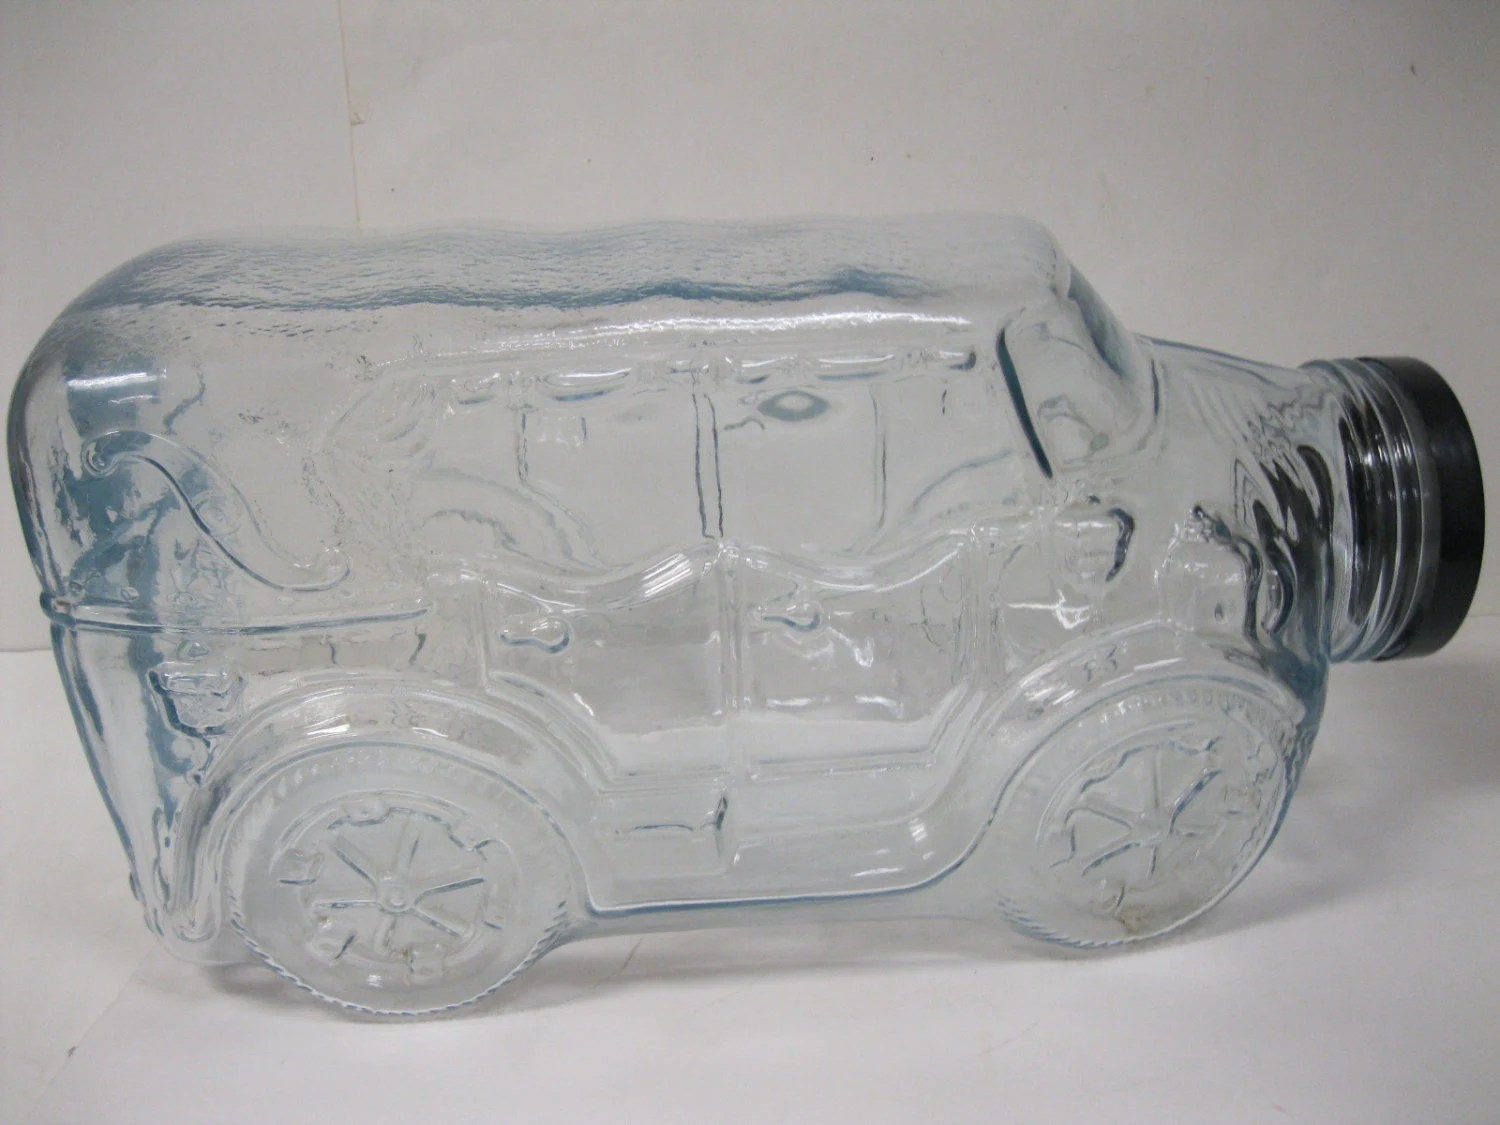 Huge Glass Cookie Jar Antique Automobile Large Clear Glass Jar Neat Find Collectible